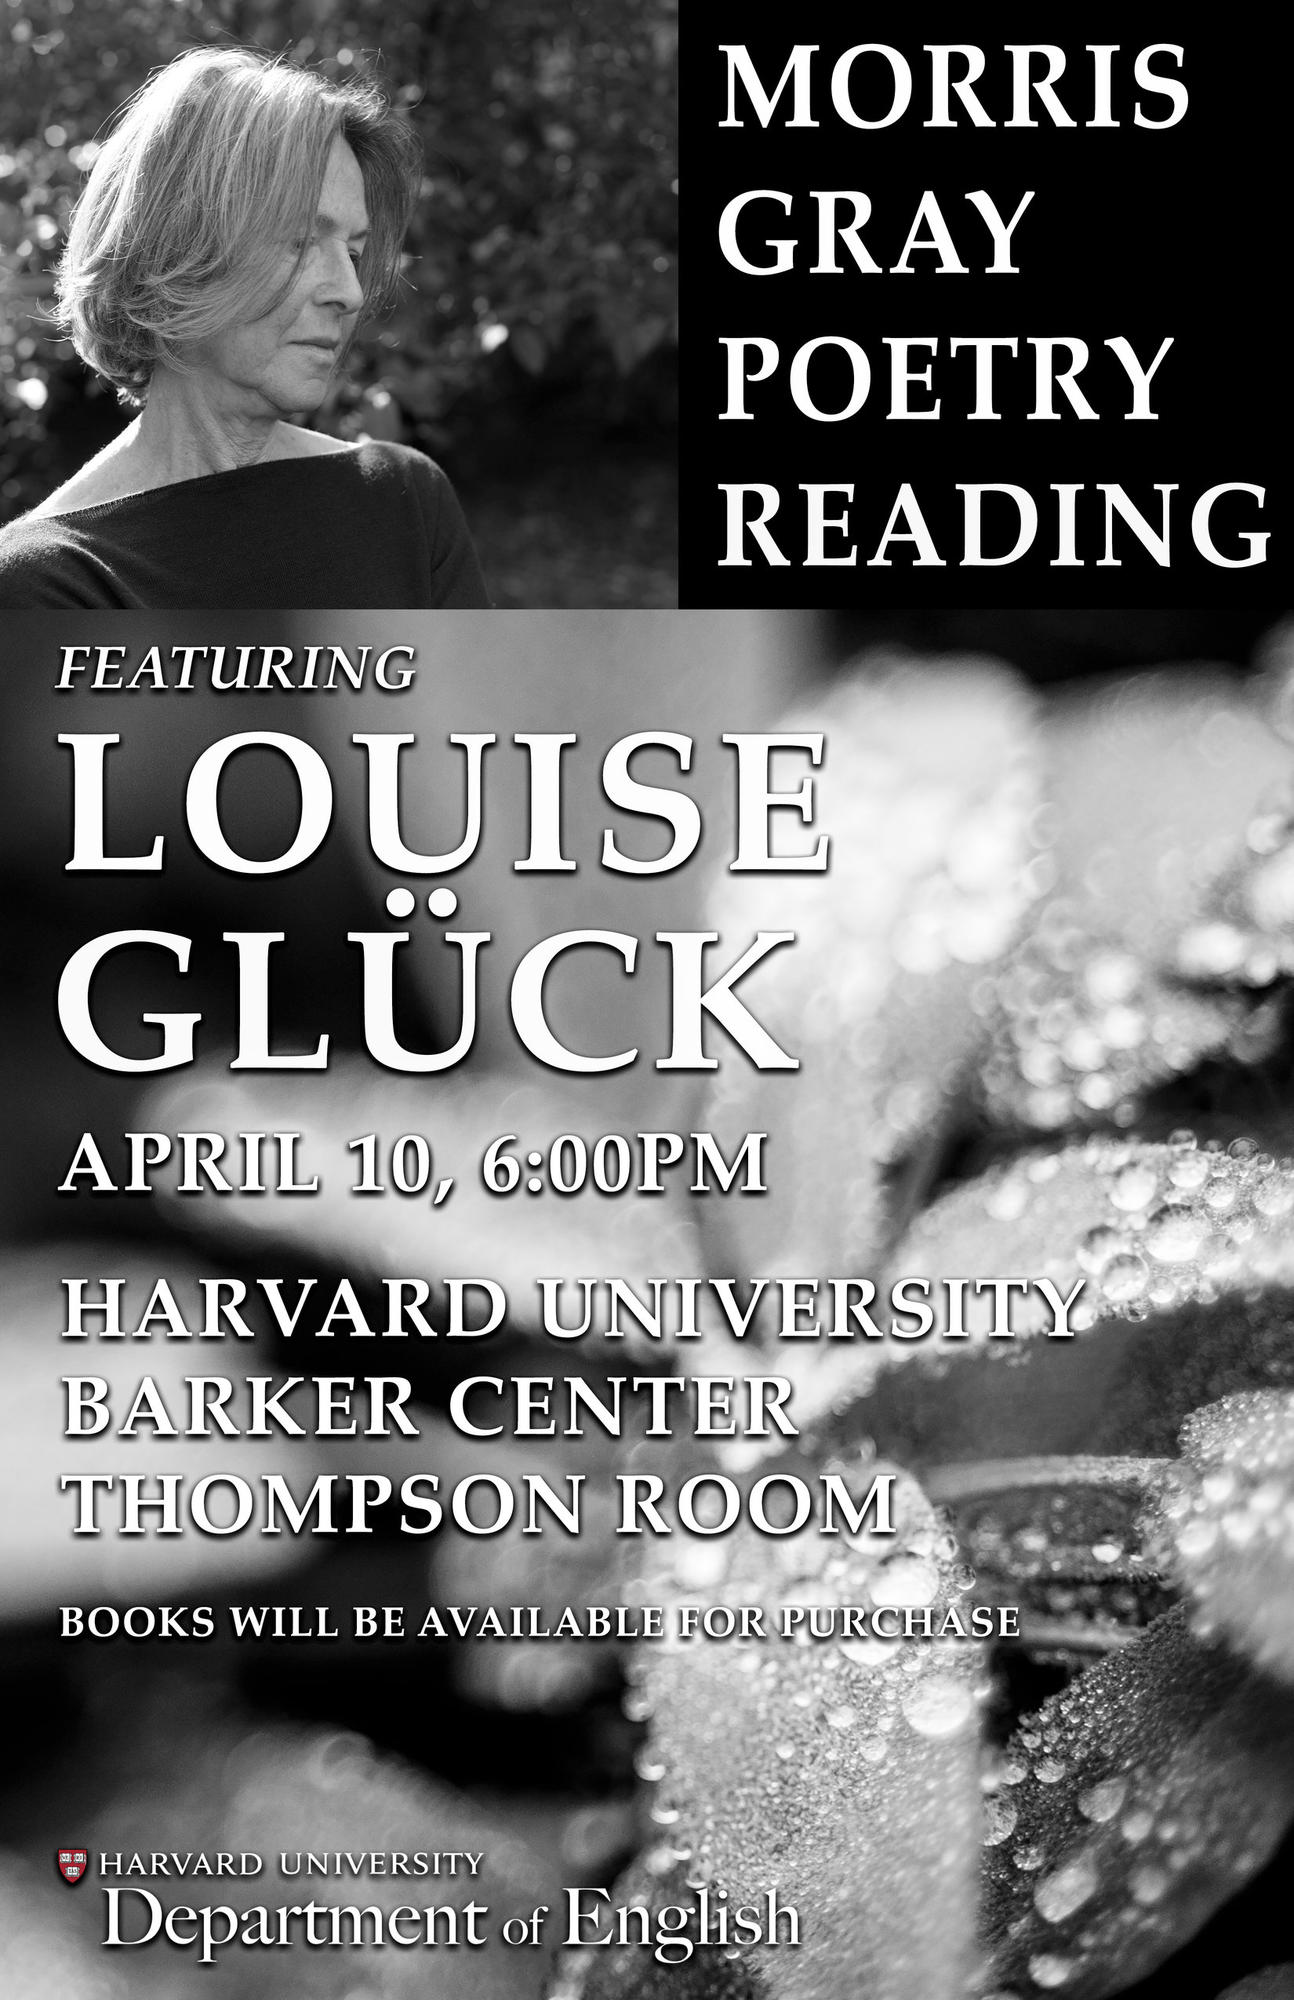 Morris Gray Poetry Reading Featuring Louise Gluck Department Of English